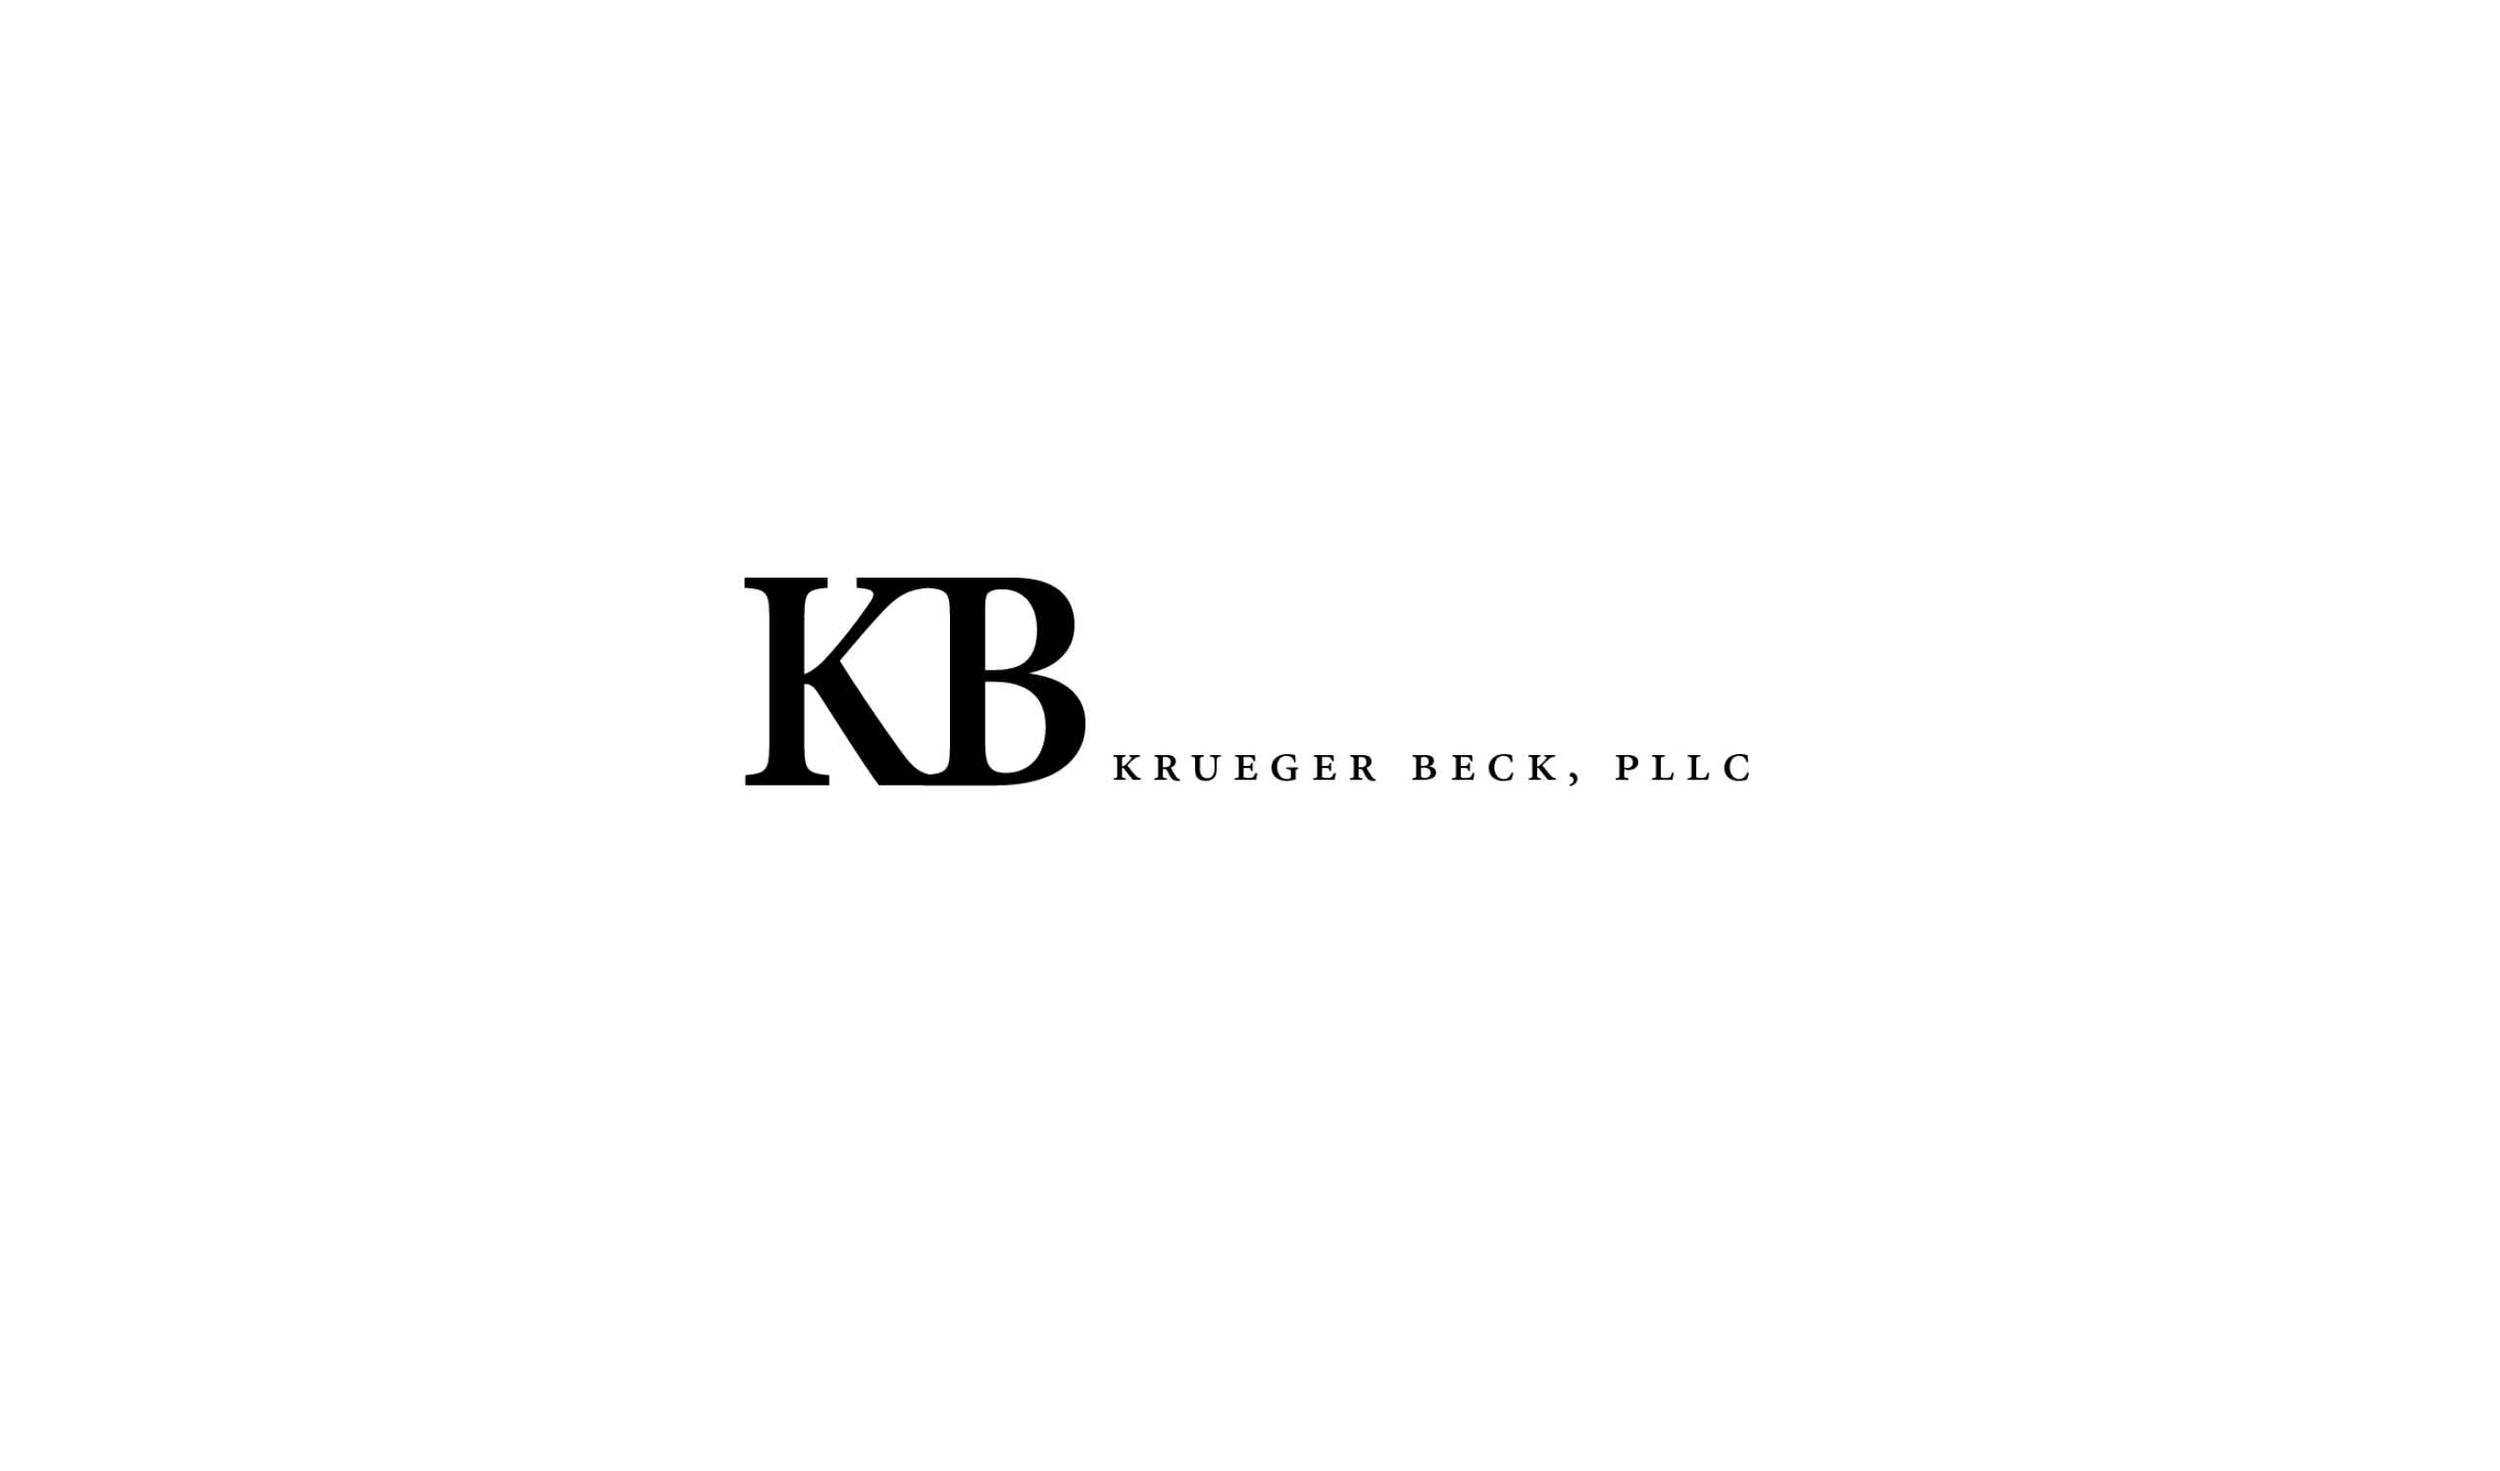 Krueger Beck, PLLC | Law firm